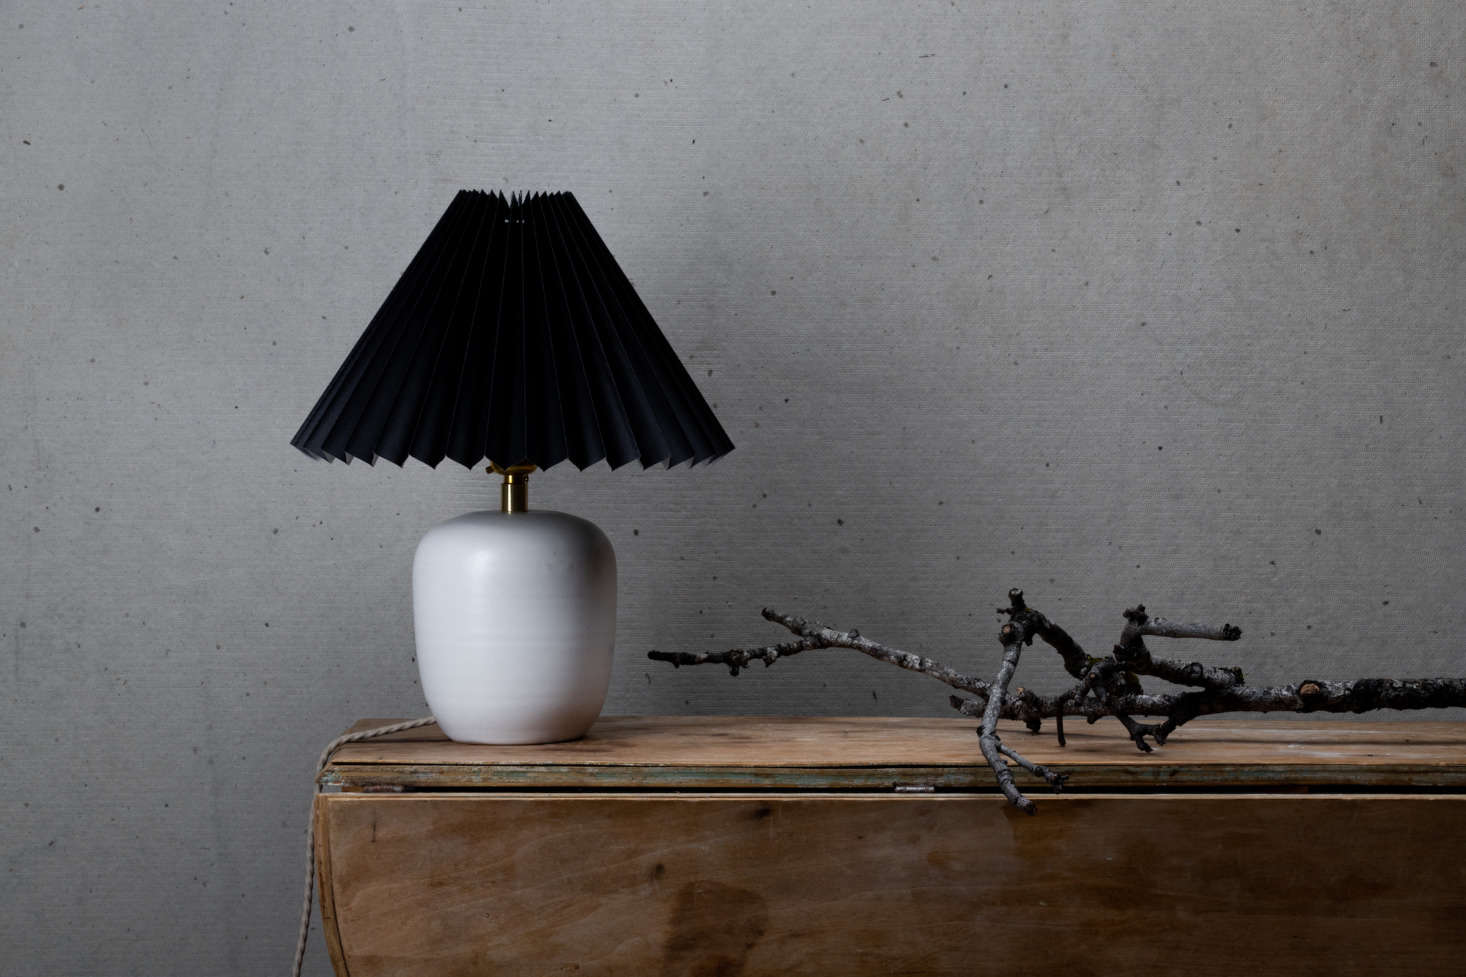 Notary Lighting Collection #3 is handmade from white porcelain clay and glazed in a soft satin white finish; $550.